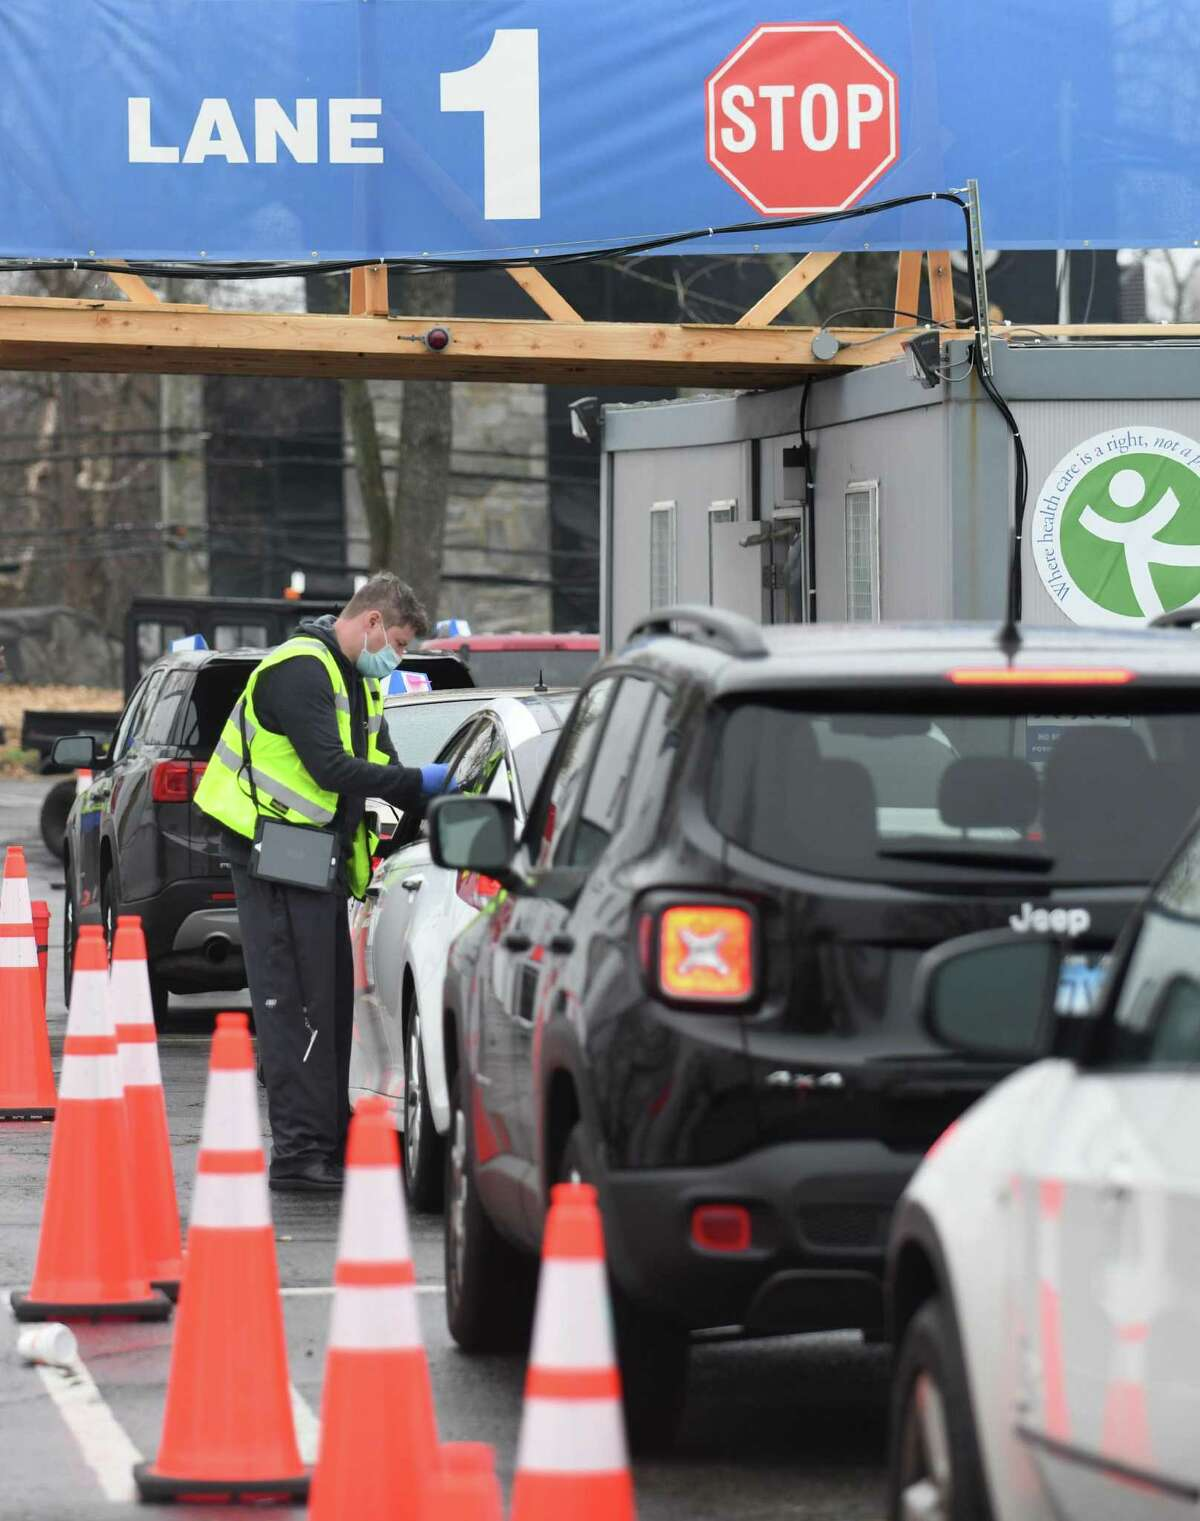 CHC staff checks in patients from their cars waiting to be vaccinated at the Community Health Center Drive-Thru Vaccination Clinic in Stamford, Conn. Sunday, April 11, 2021. Hundreds of Norwalk Public School students 16 and older received the first dose of the COVID-19 vaccine Sunday at the clinic.